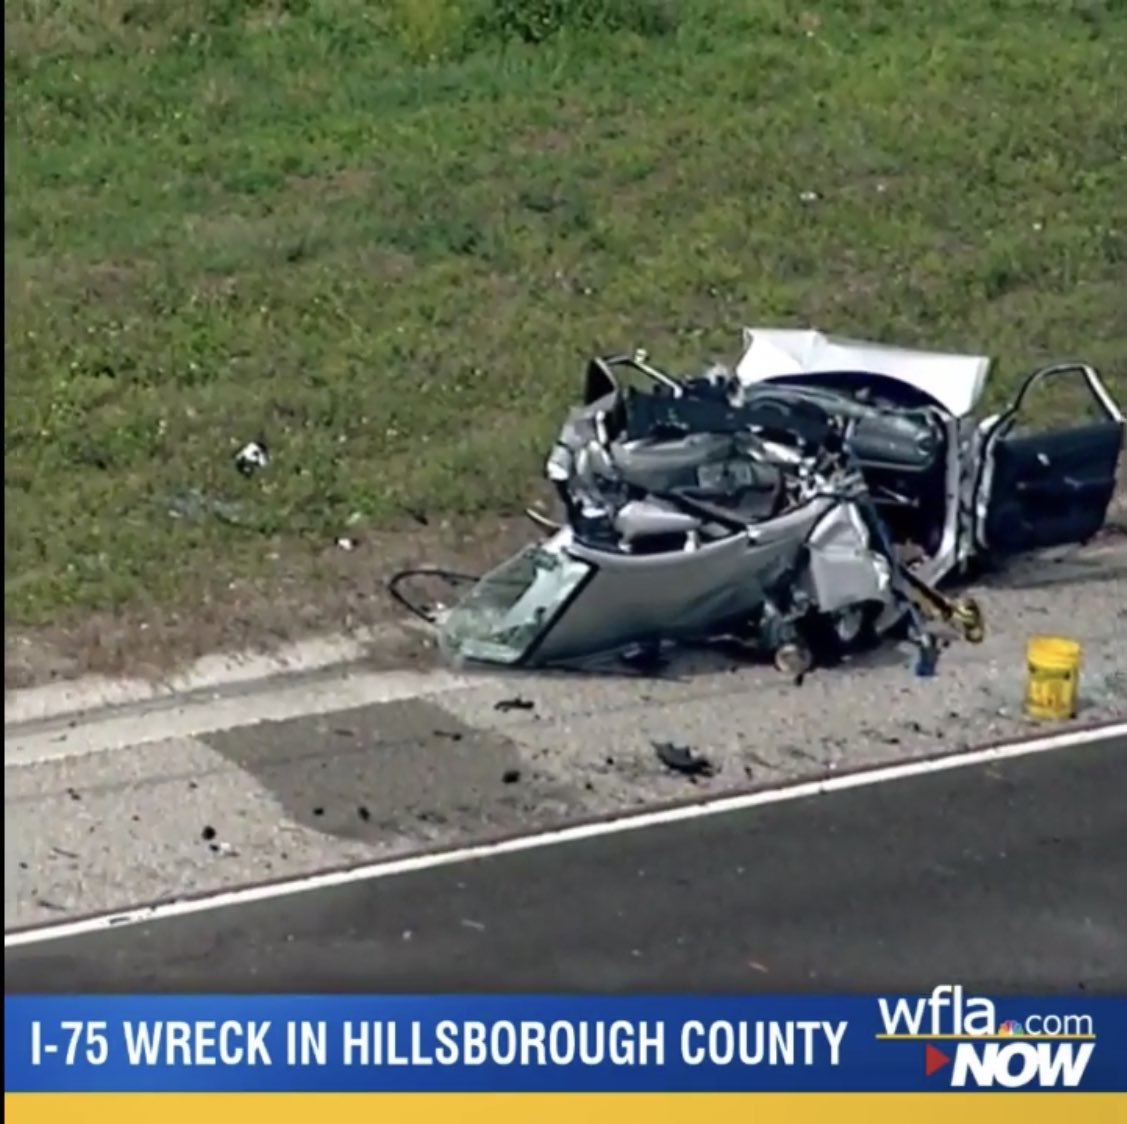 A multi-vehicle crash with injuries snarled traffic for hours